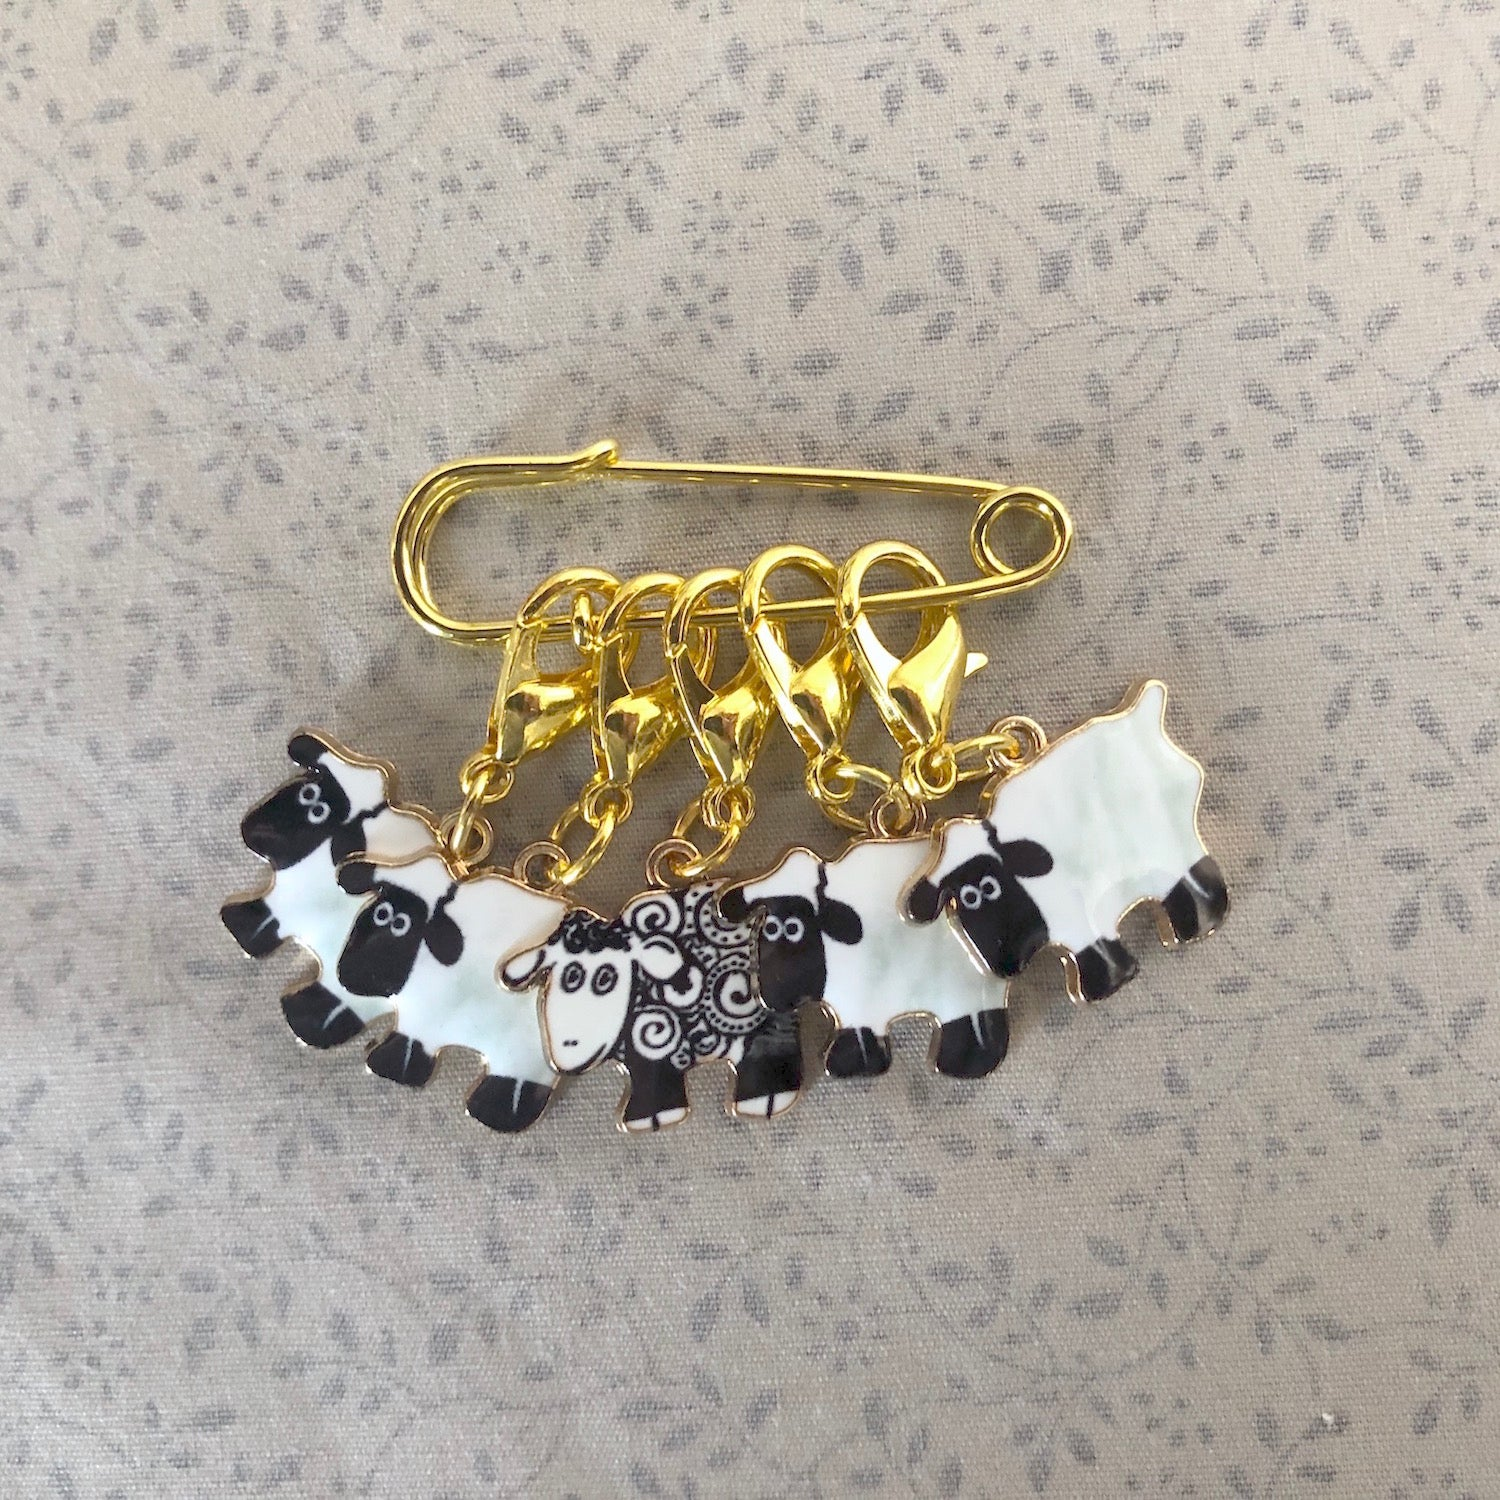 Knitting & Crochet Stitch Markers - Gold Sheep